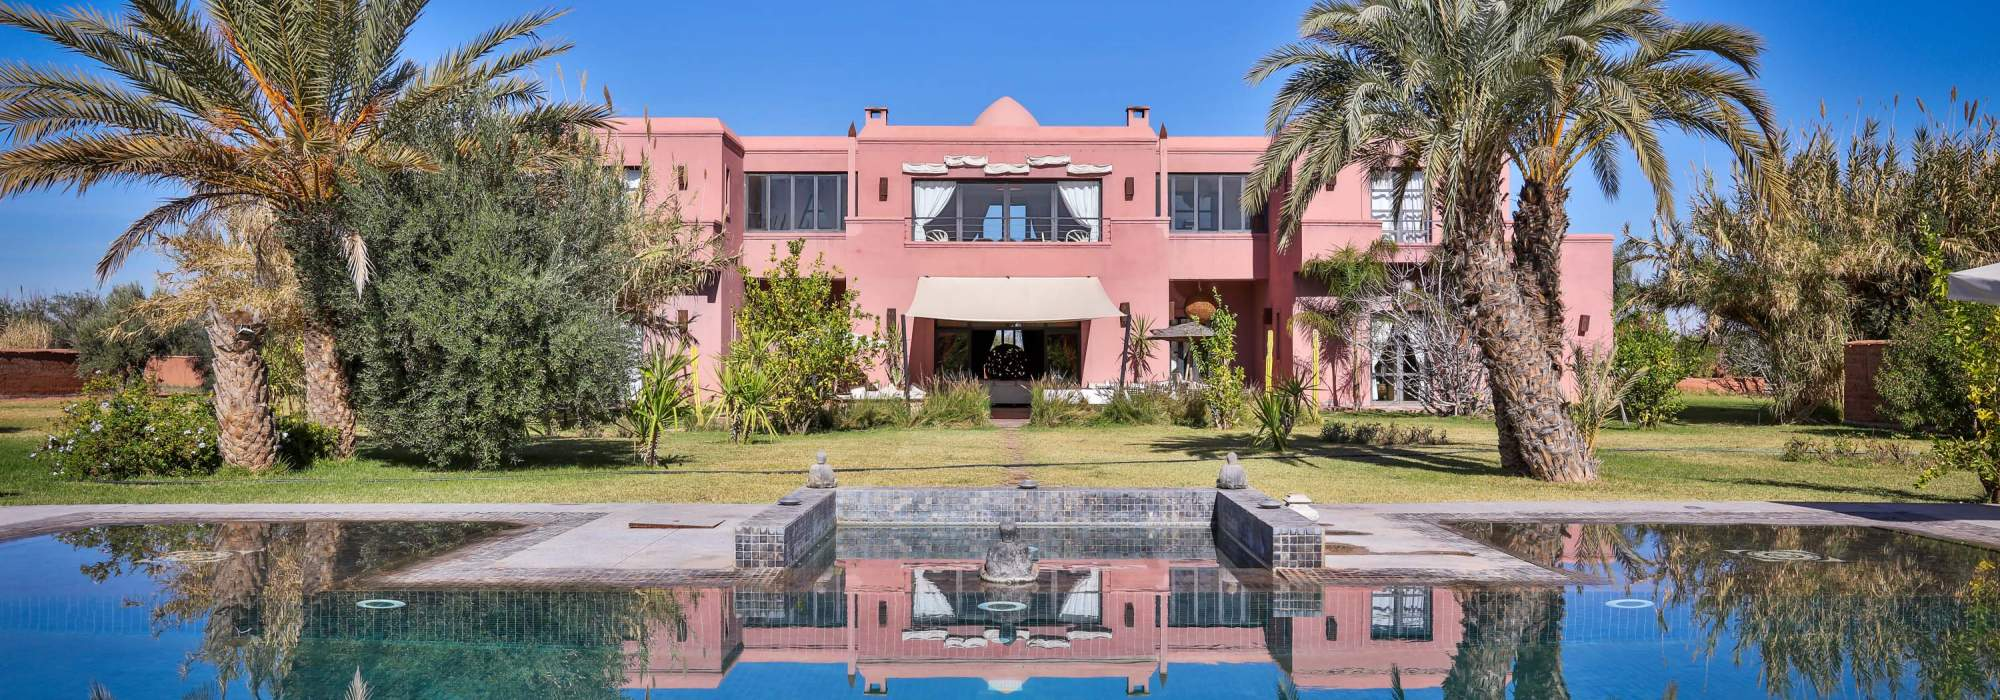 Luxueuse villa contemporaine a vendre route de fes marrakech